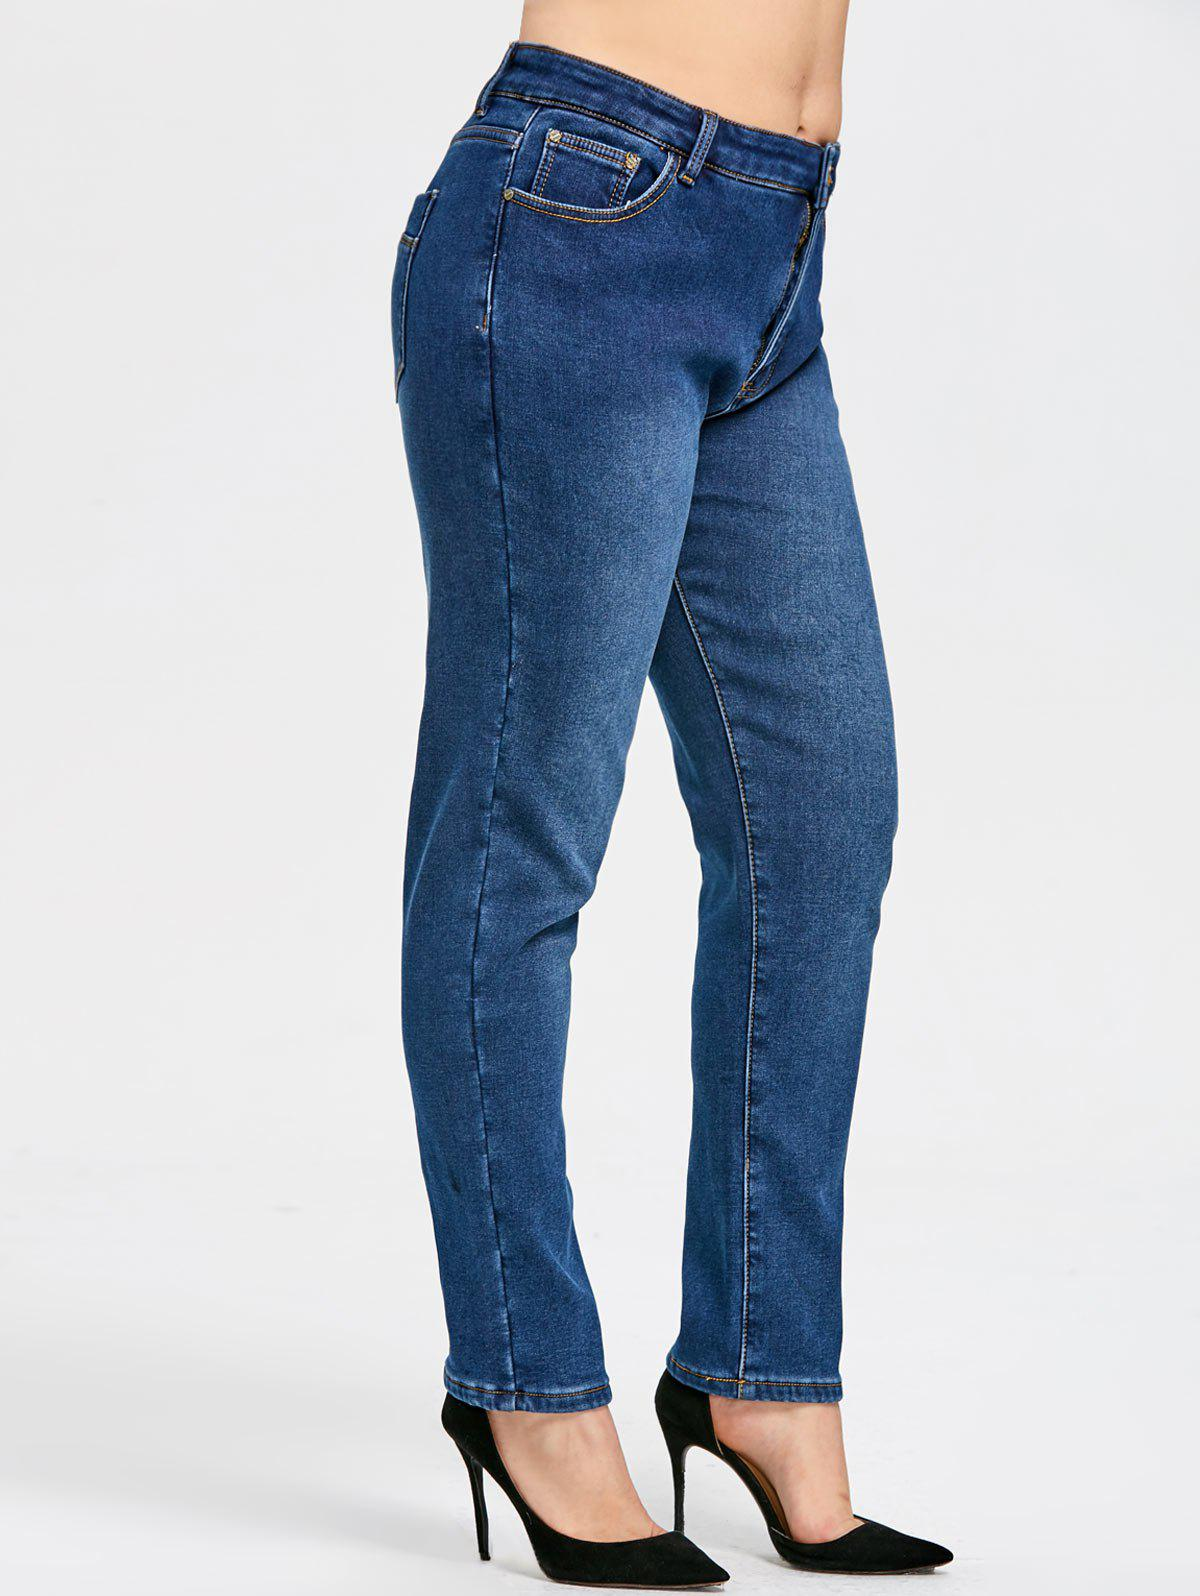 Sale Plus Size Fleece Lined Jeans with Pockets